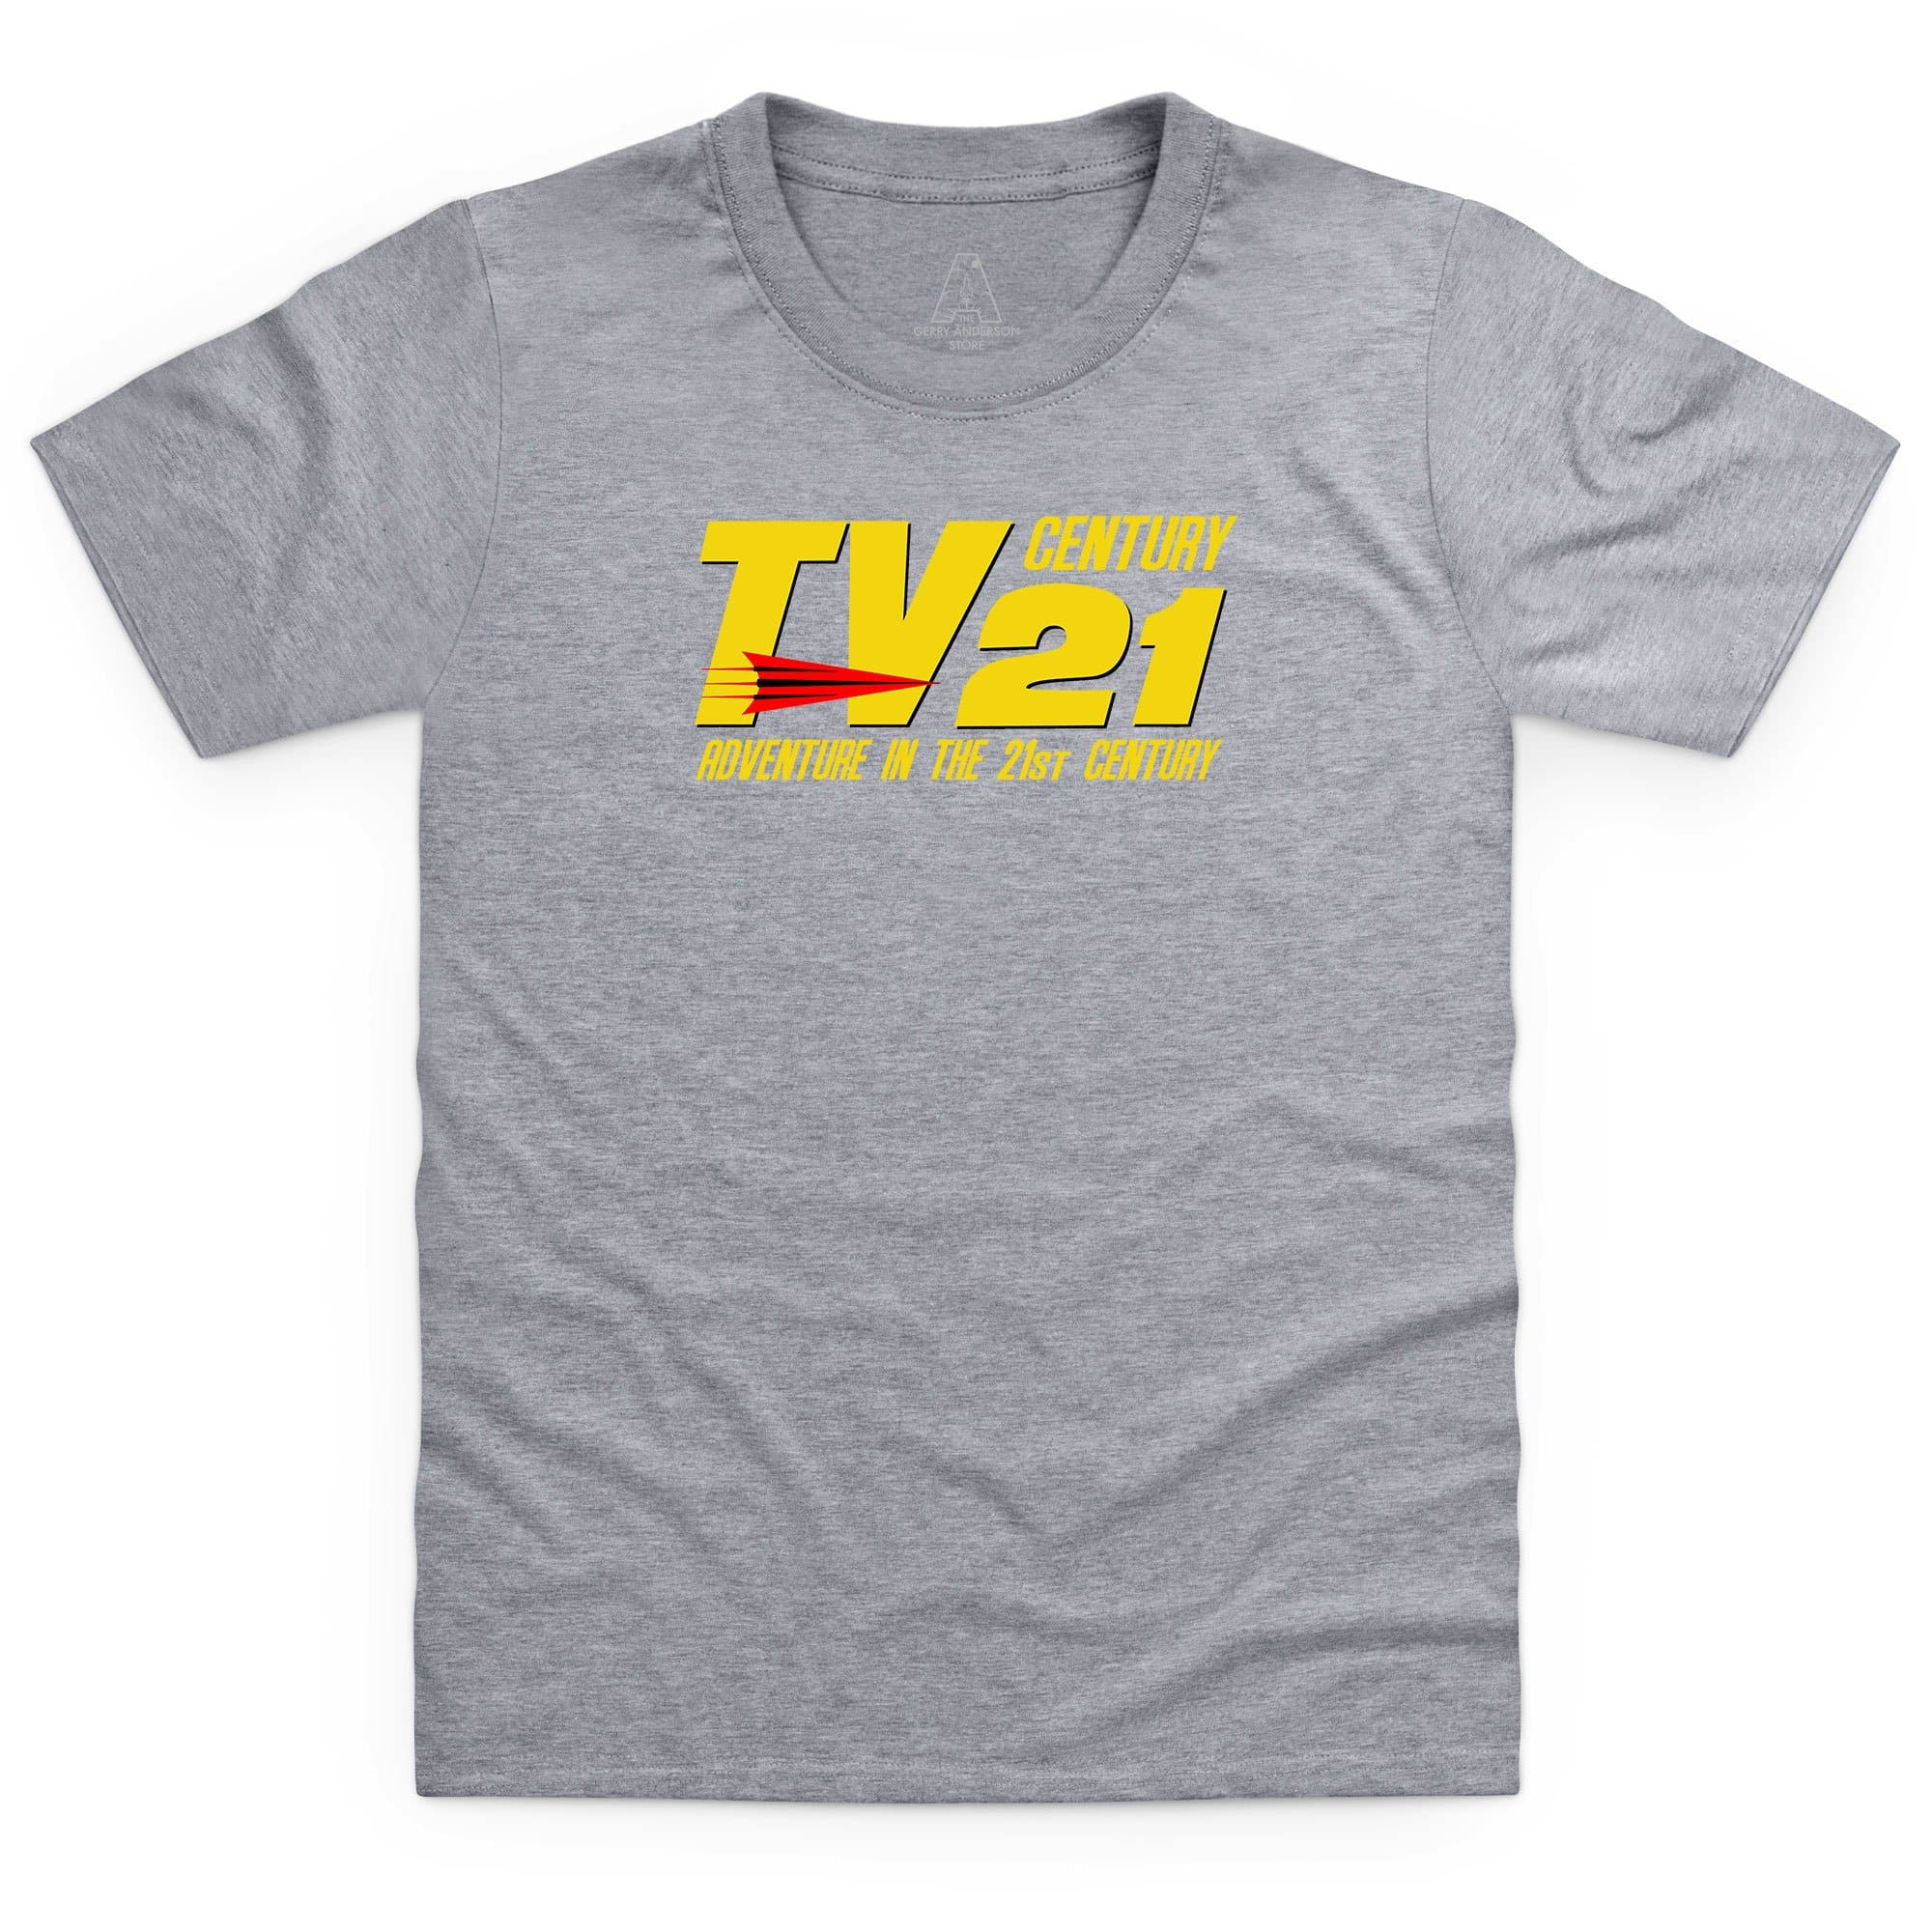 TB 21 Kids T Shirt - The Gerry Anderson Store